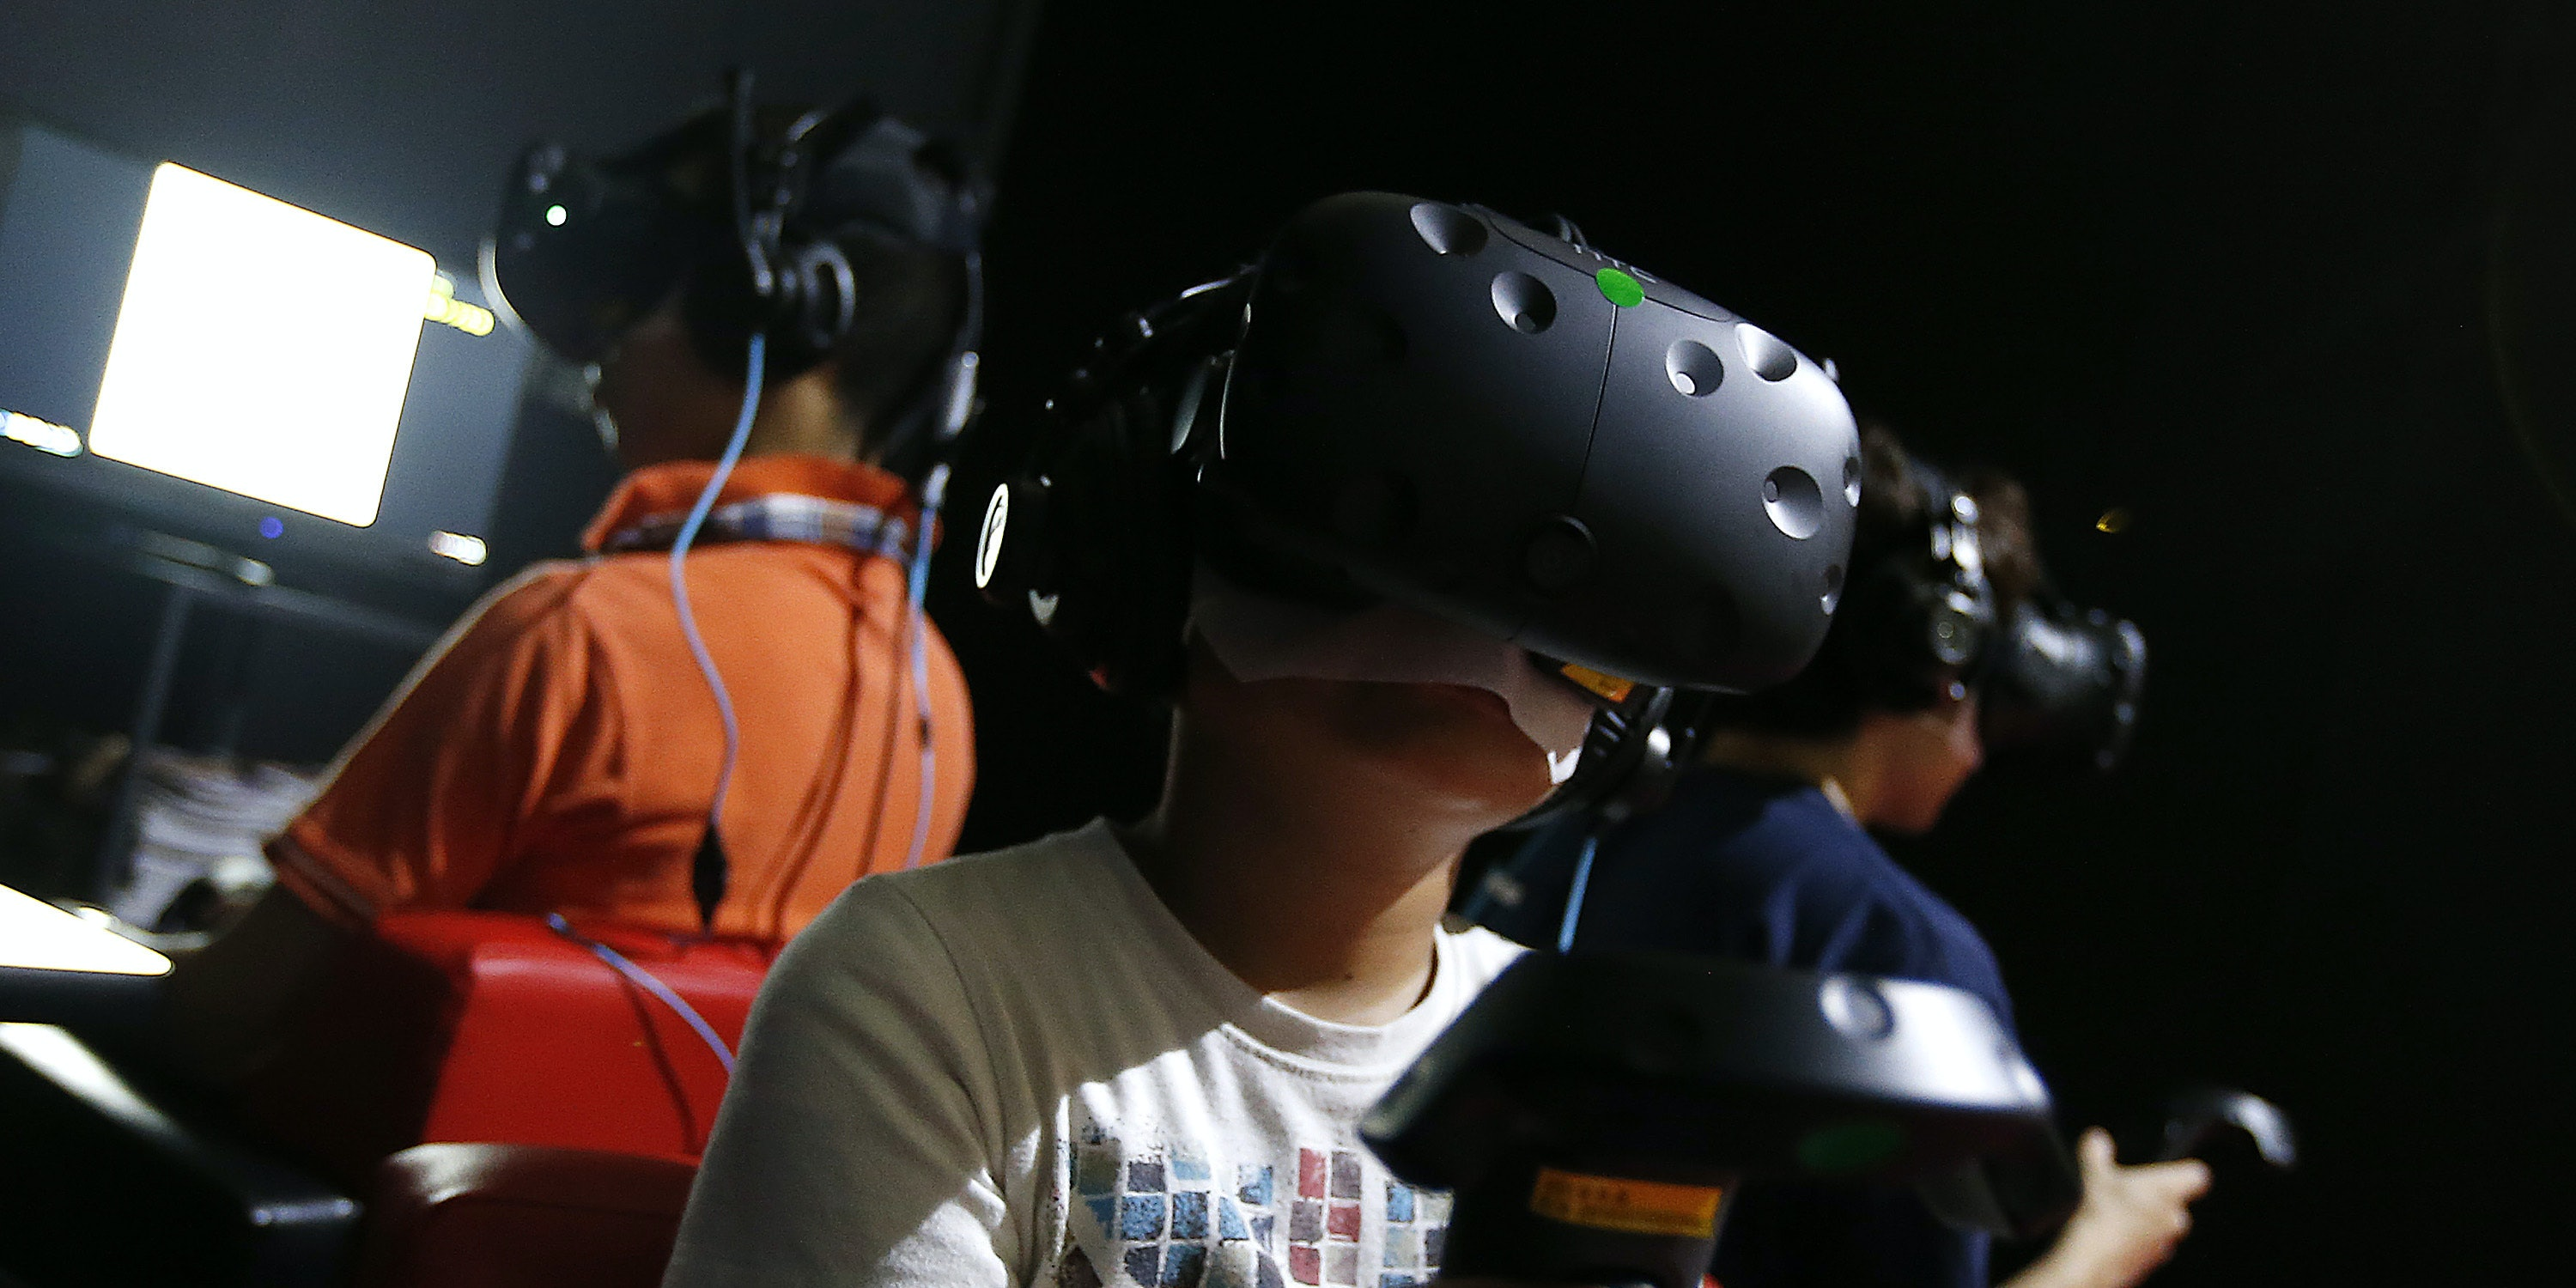 CHIBA, JAPAN - SEPTEMBER 17:  Visitors wearing an HTC Corp. Vive VR headset read Manga in the Square Enix Co. booth at Tokyo Game Show on September 17, 2016 in Chiba, Japan. Tokyo Game Show 2016 is held from September 15 to September 18, 2016.  (Photo by Yuya Shino/Getty Images for TOKYO GAME SHOW)